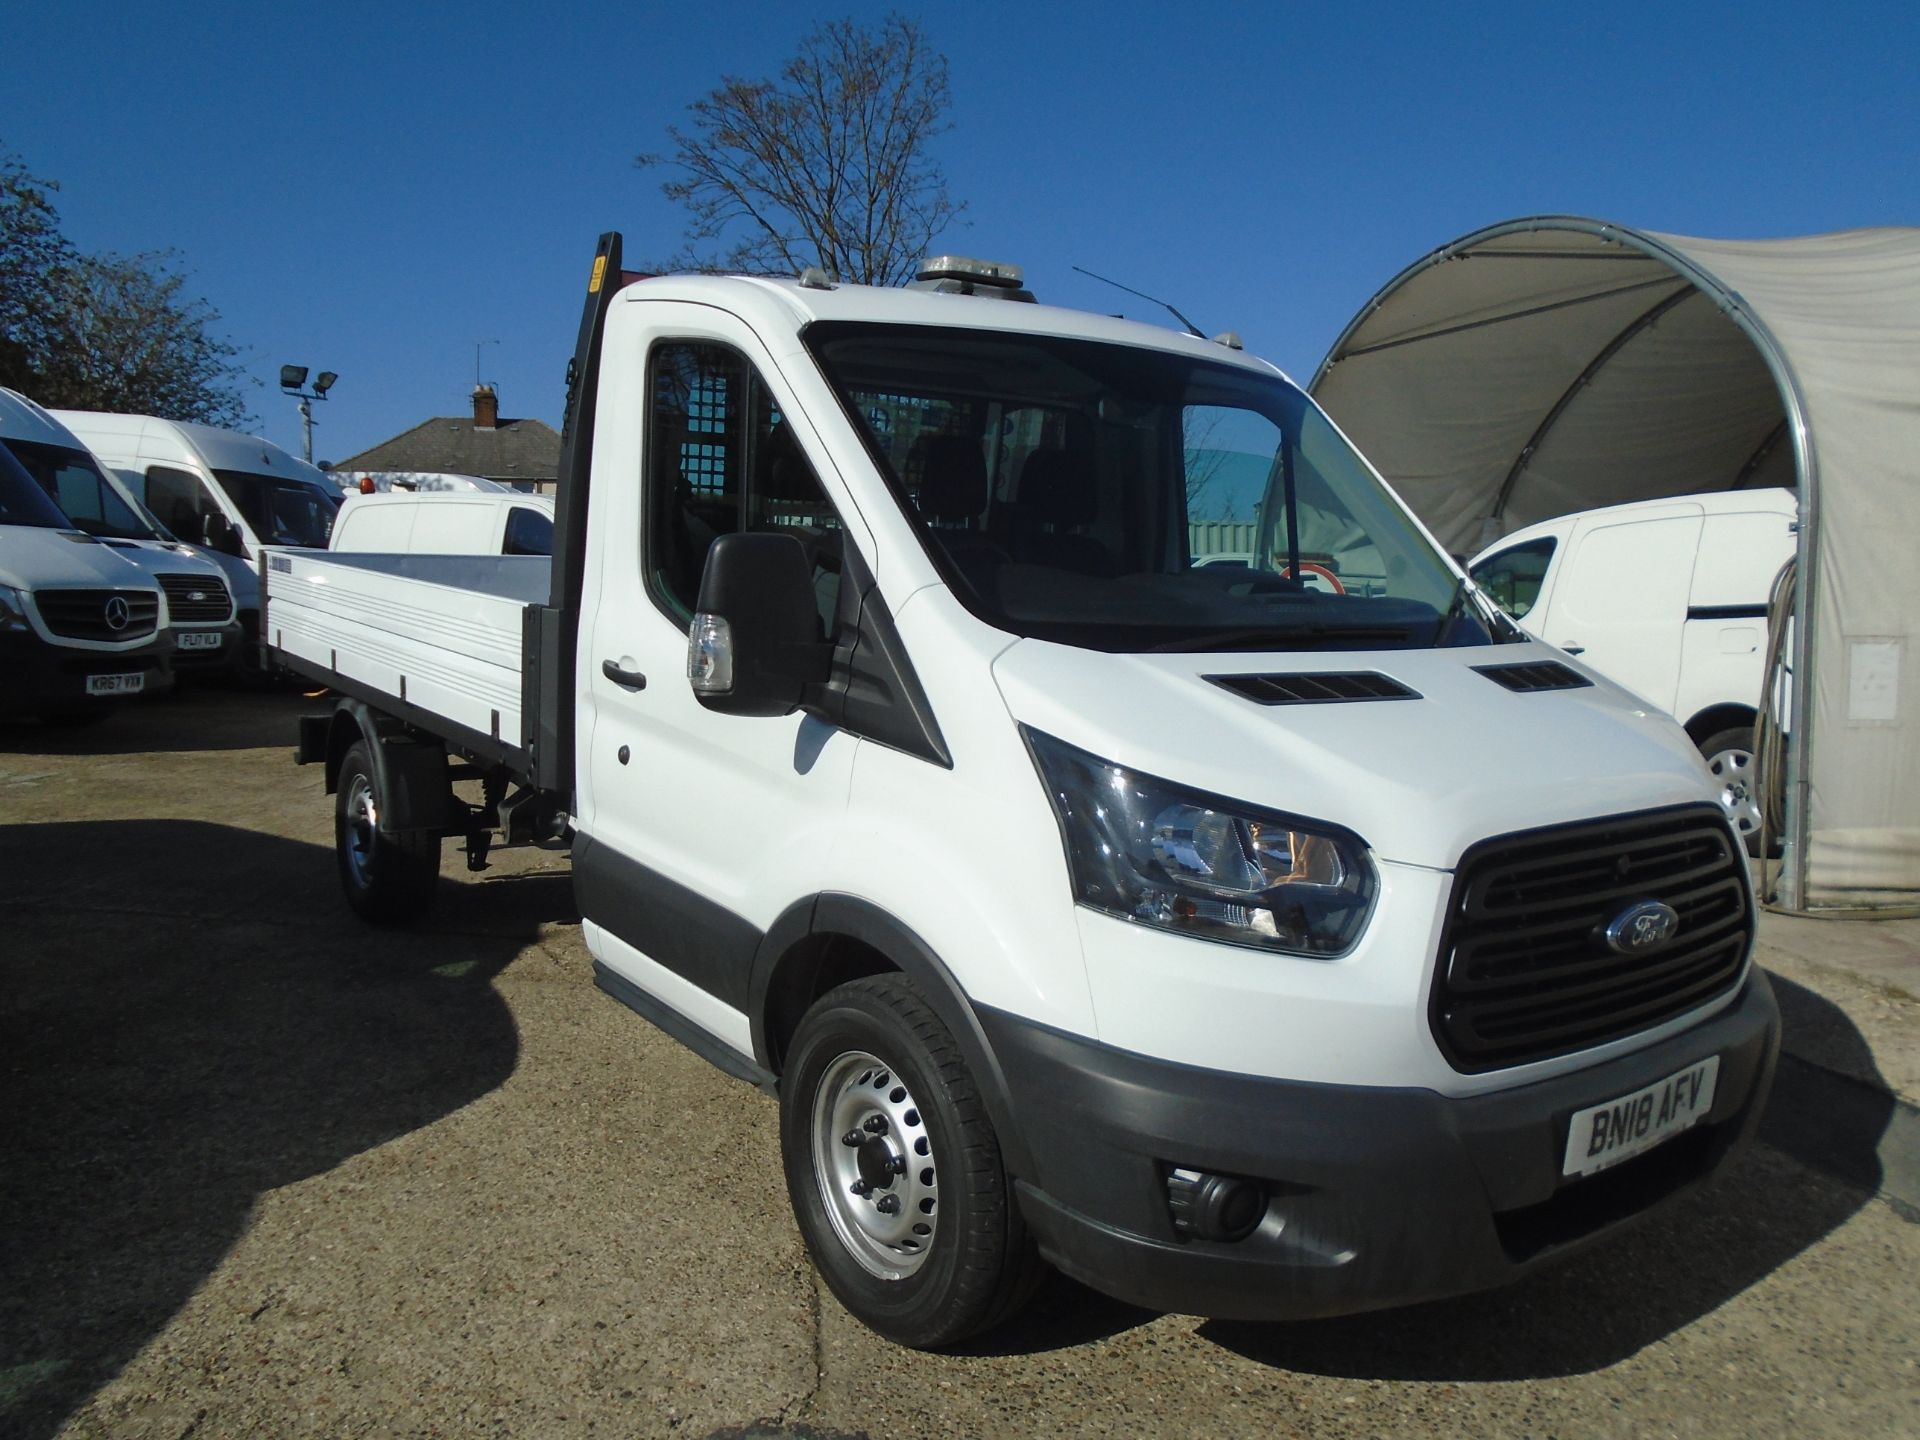 2018 Ford Transit 2.0 Tdci 130Ps 'One Stop' Tipper [1 Way] (BN18AFV)